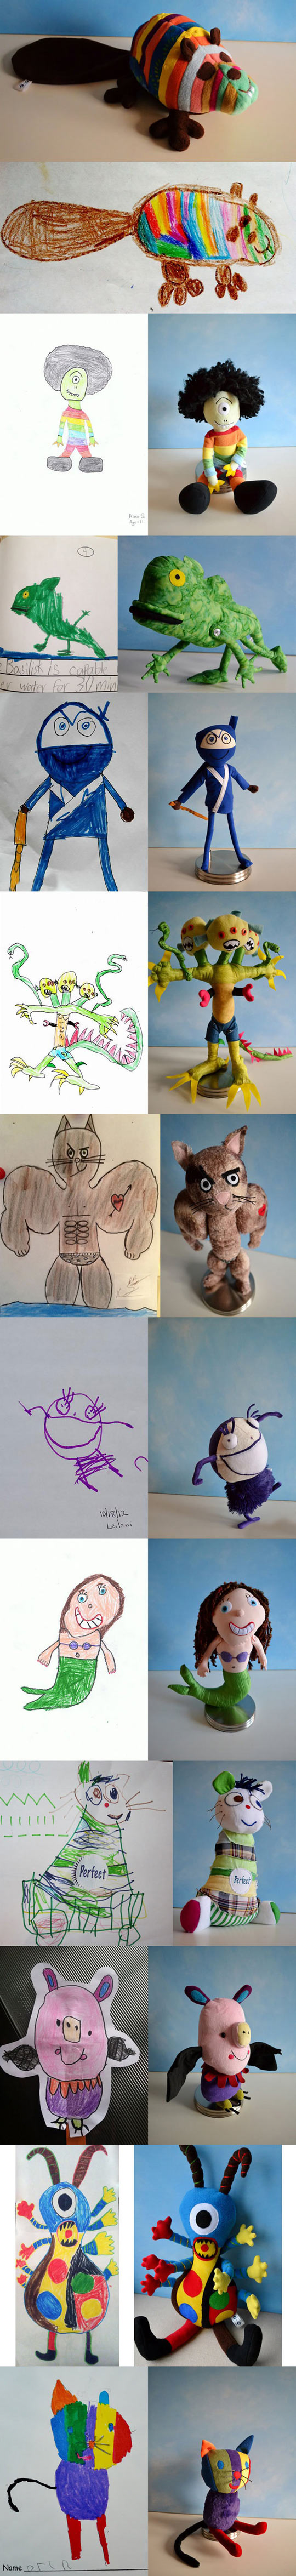 funny-kids-drawing-made-plush-toys